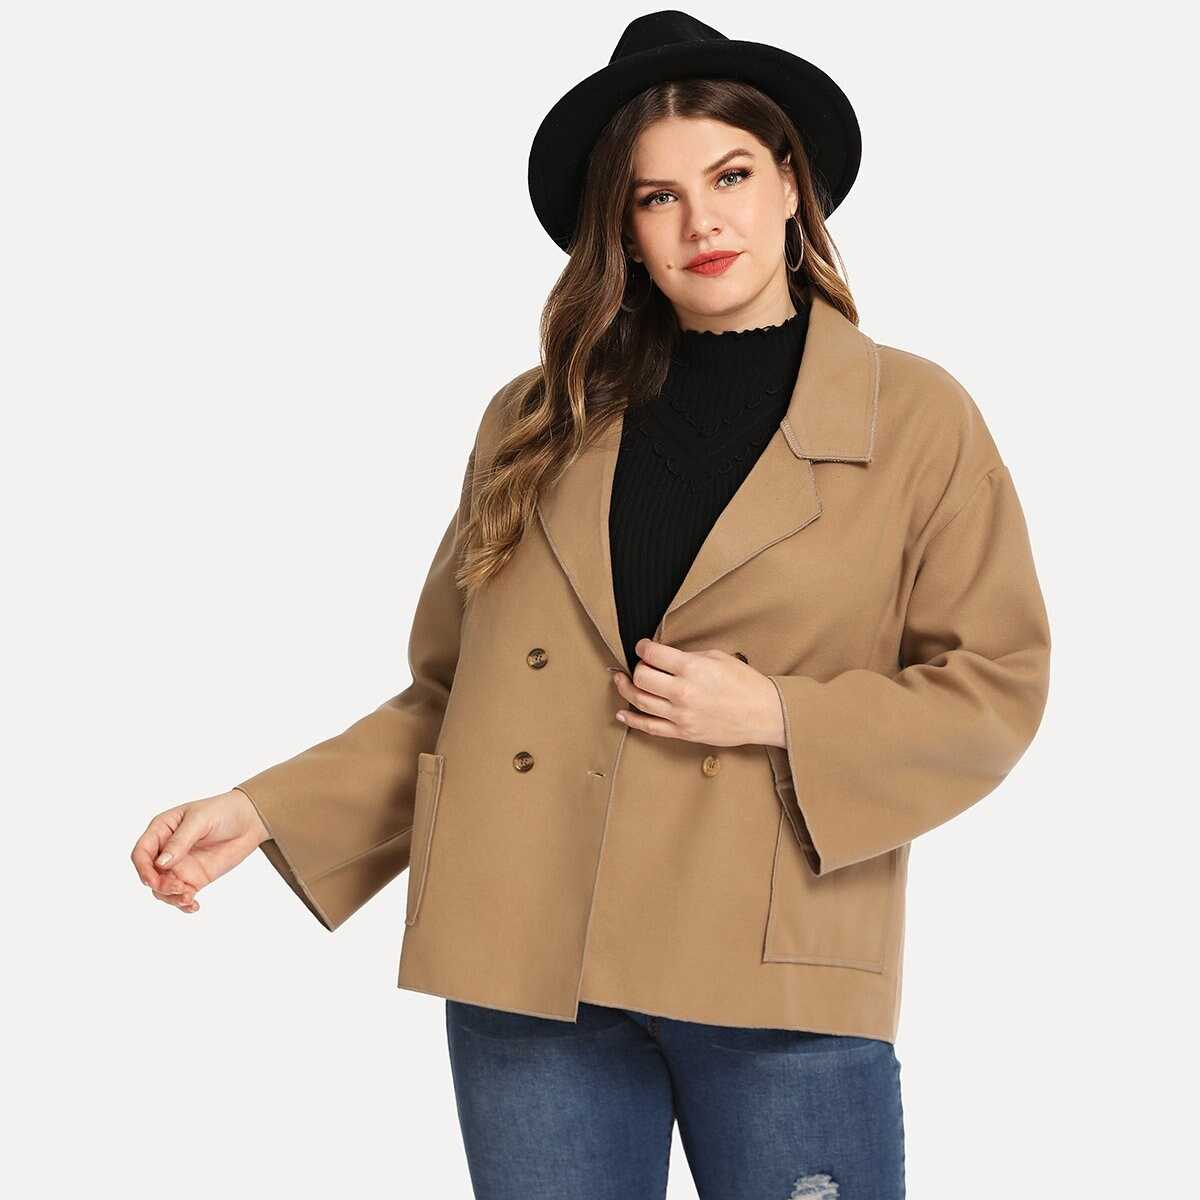 Plus Solid Double-breasted Blazer - Shein - GOOFASH